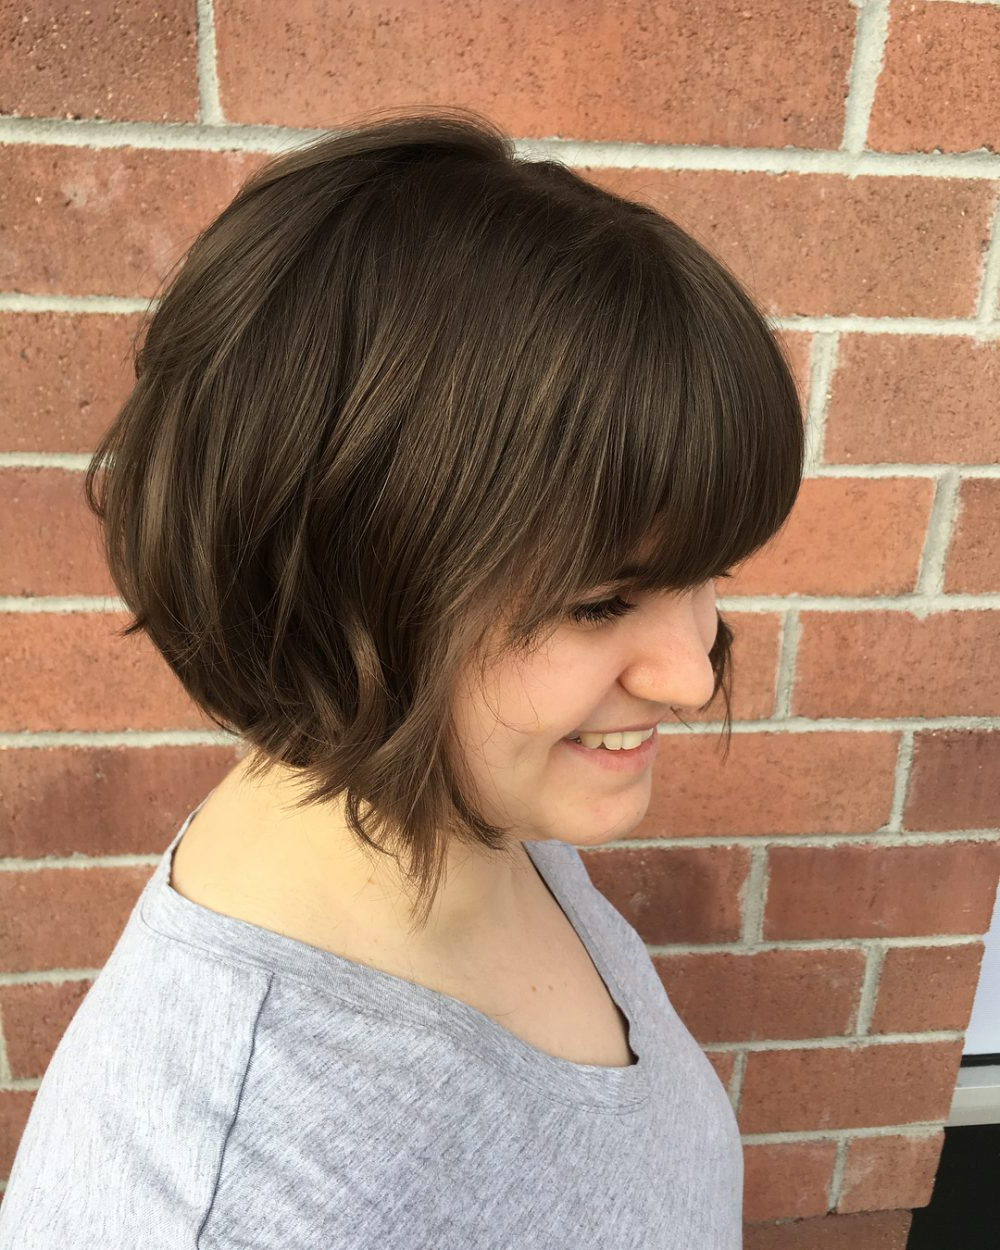 34 Greatest Short Haircuts And Hairstyles For Thick Hair For 2018 Throughout Short Haircuts For Wavy Thick Hair (View 8 of 25)